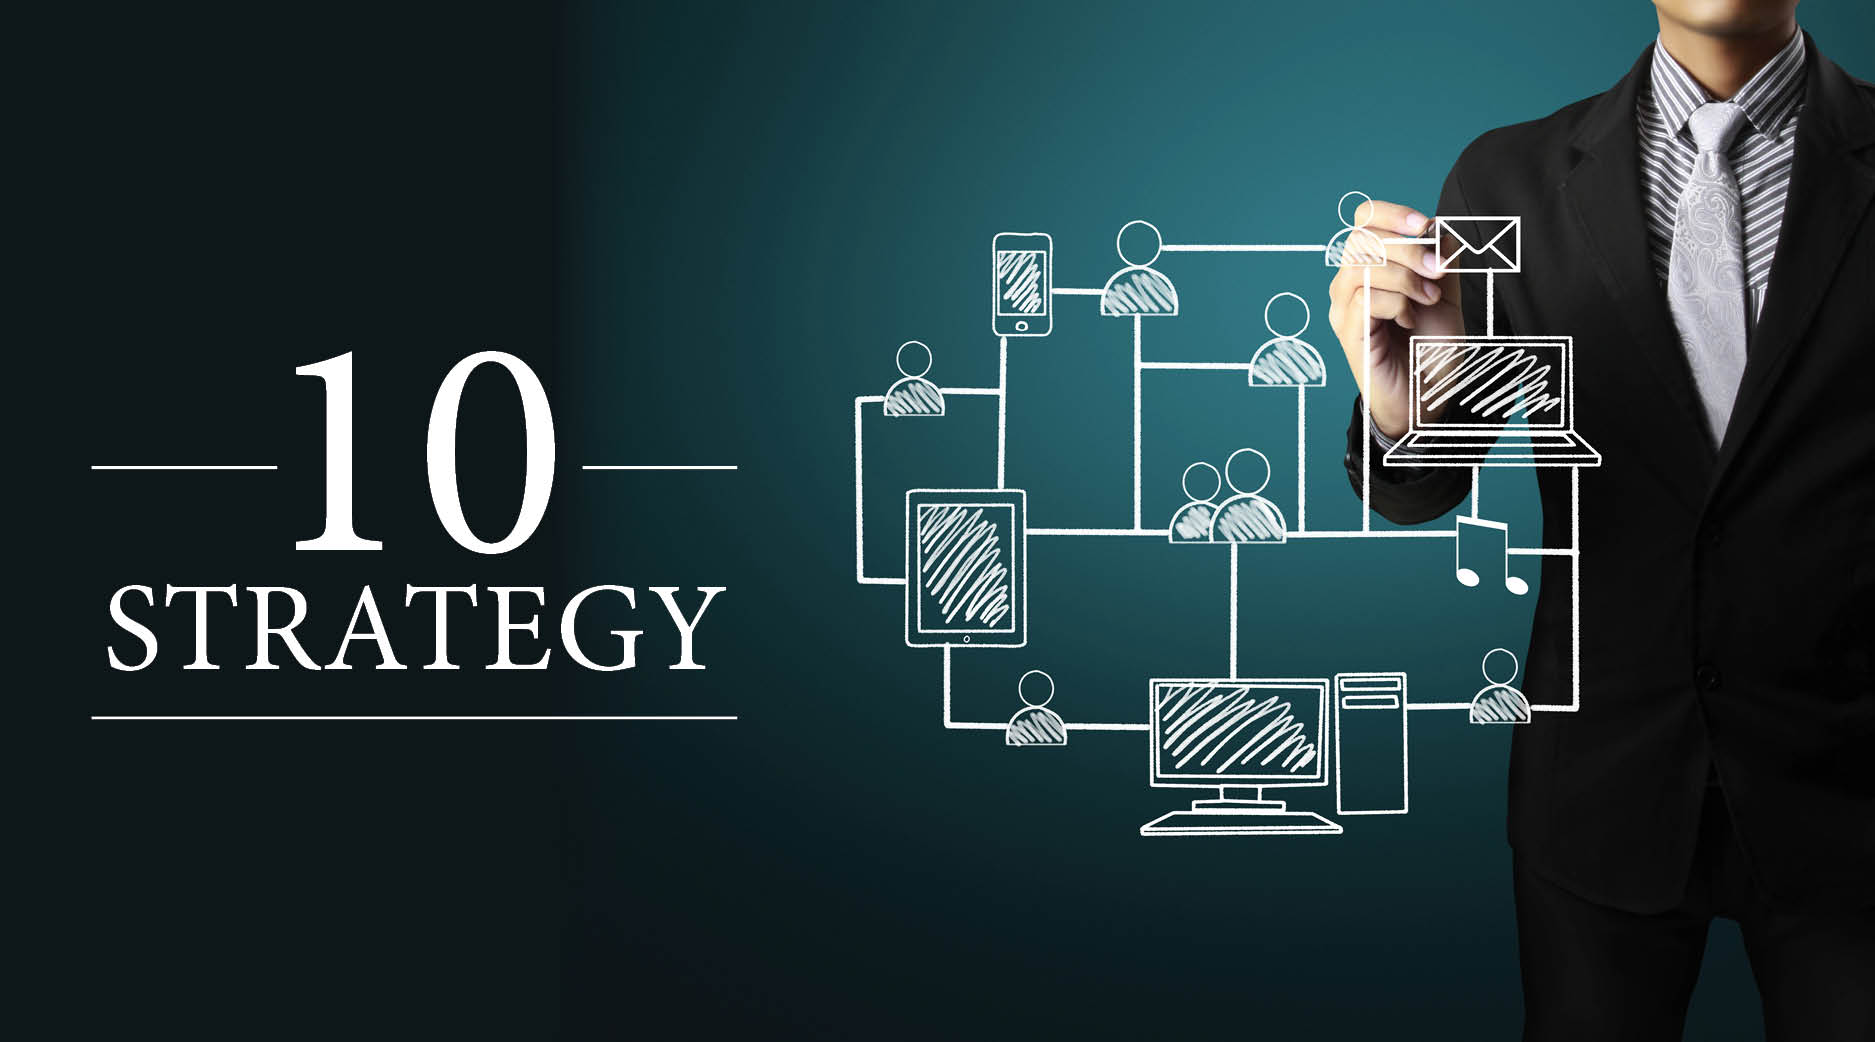 root blog - strategy 10